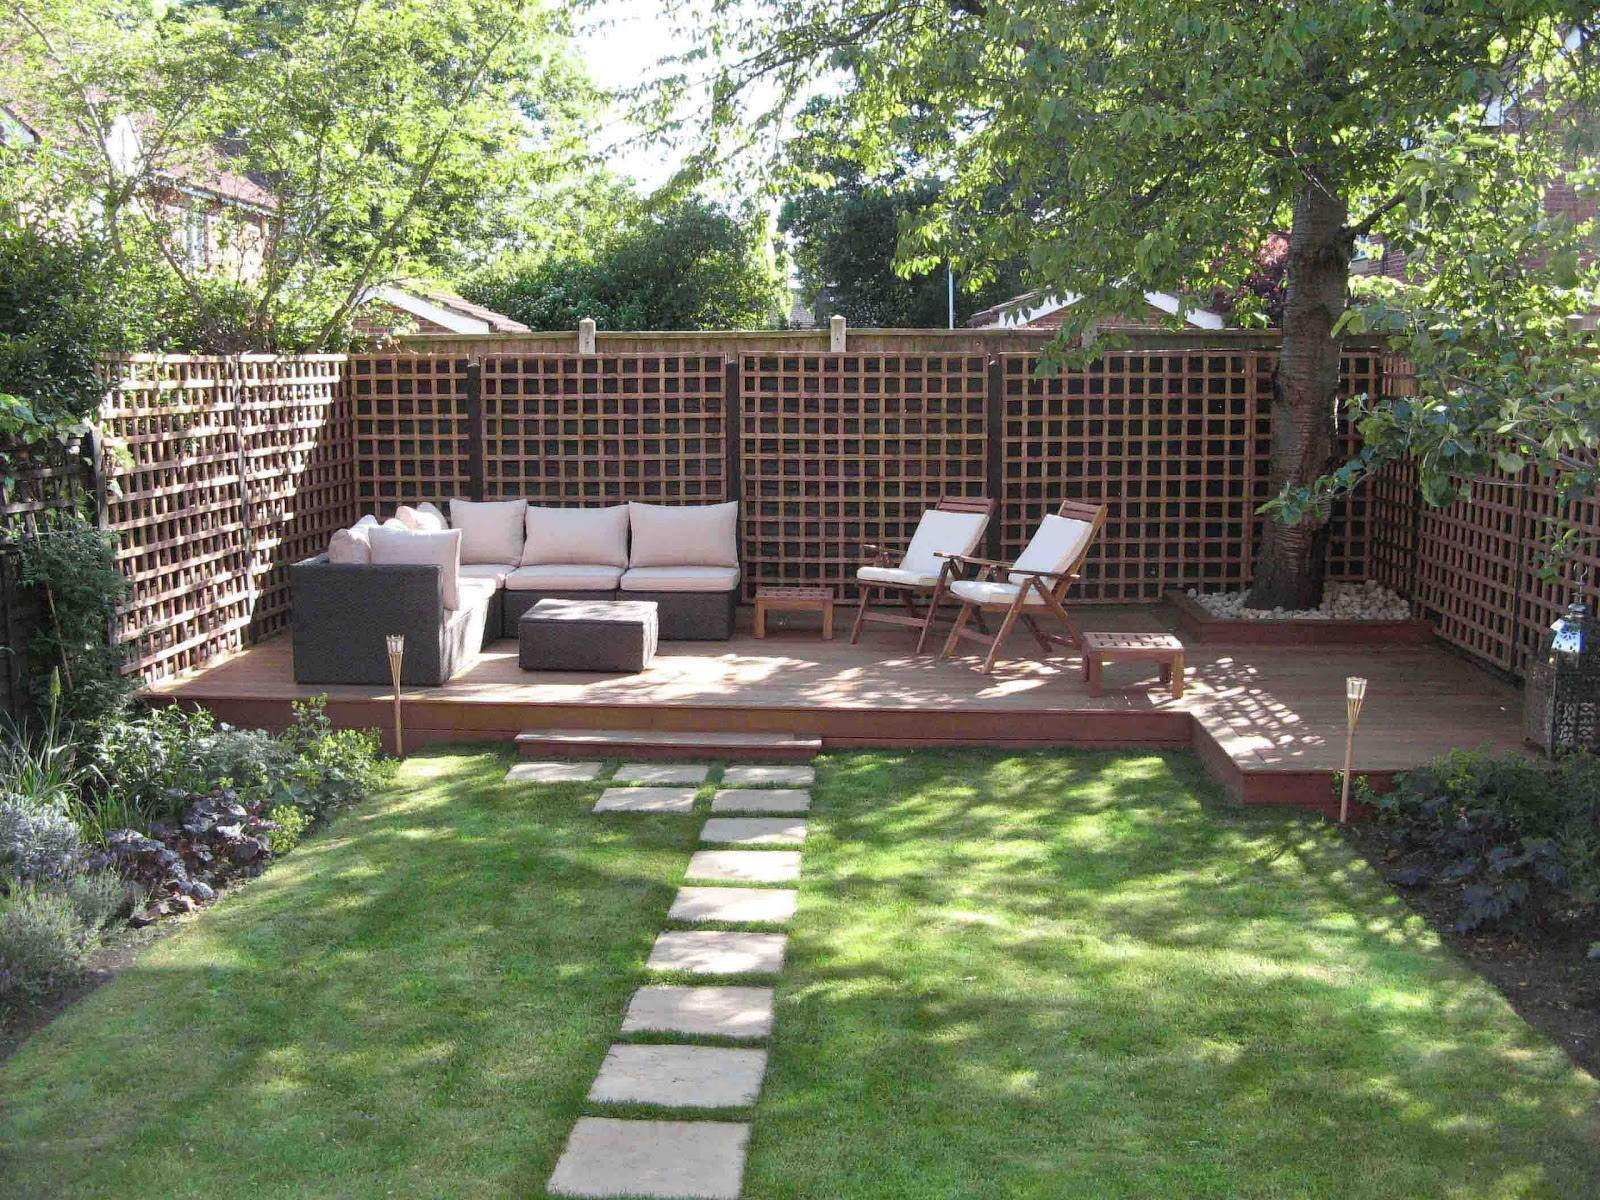 Garden designs for small gardens home interior designs for Small garden design ideas decking